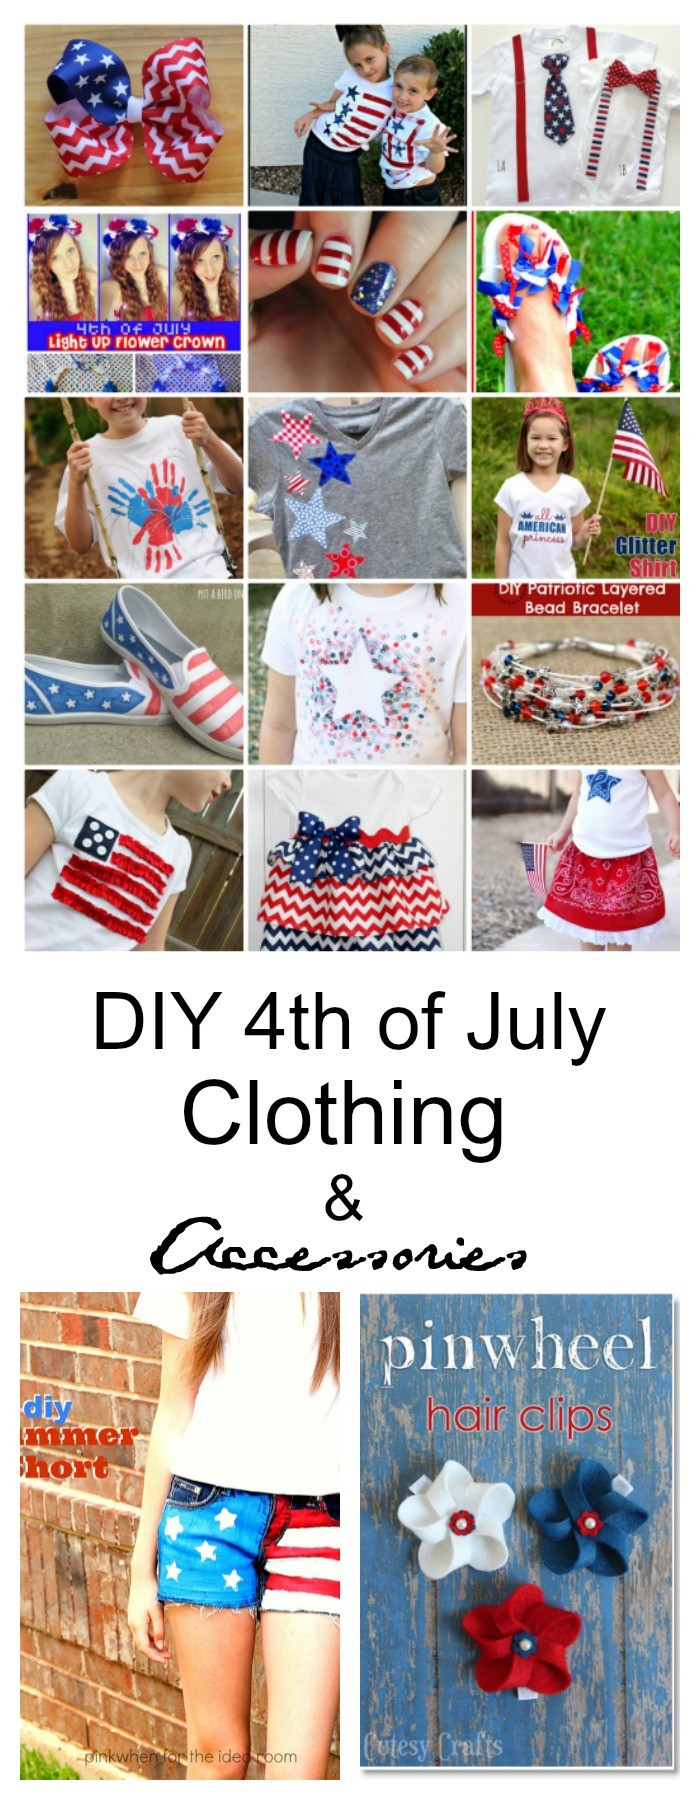 Best ideas about DIY 4Th Of July Outfits . Save or Pin DIY 4th of July Clothing and Accessories The Idea Room Now.